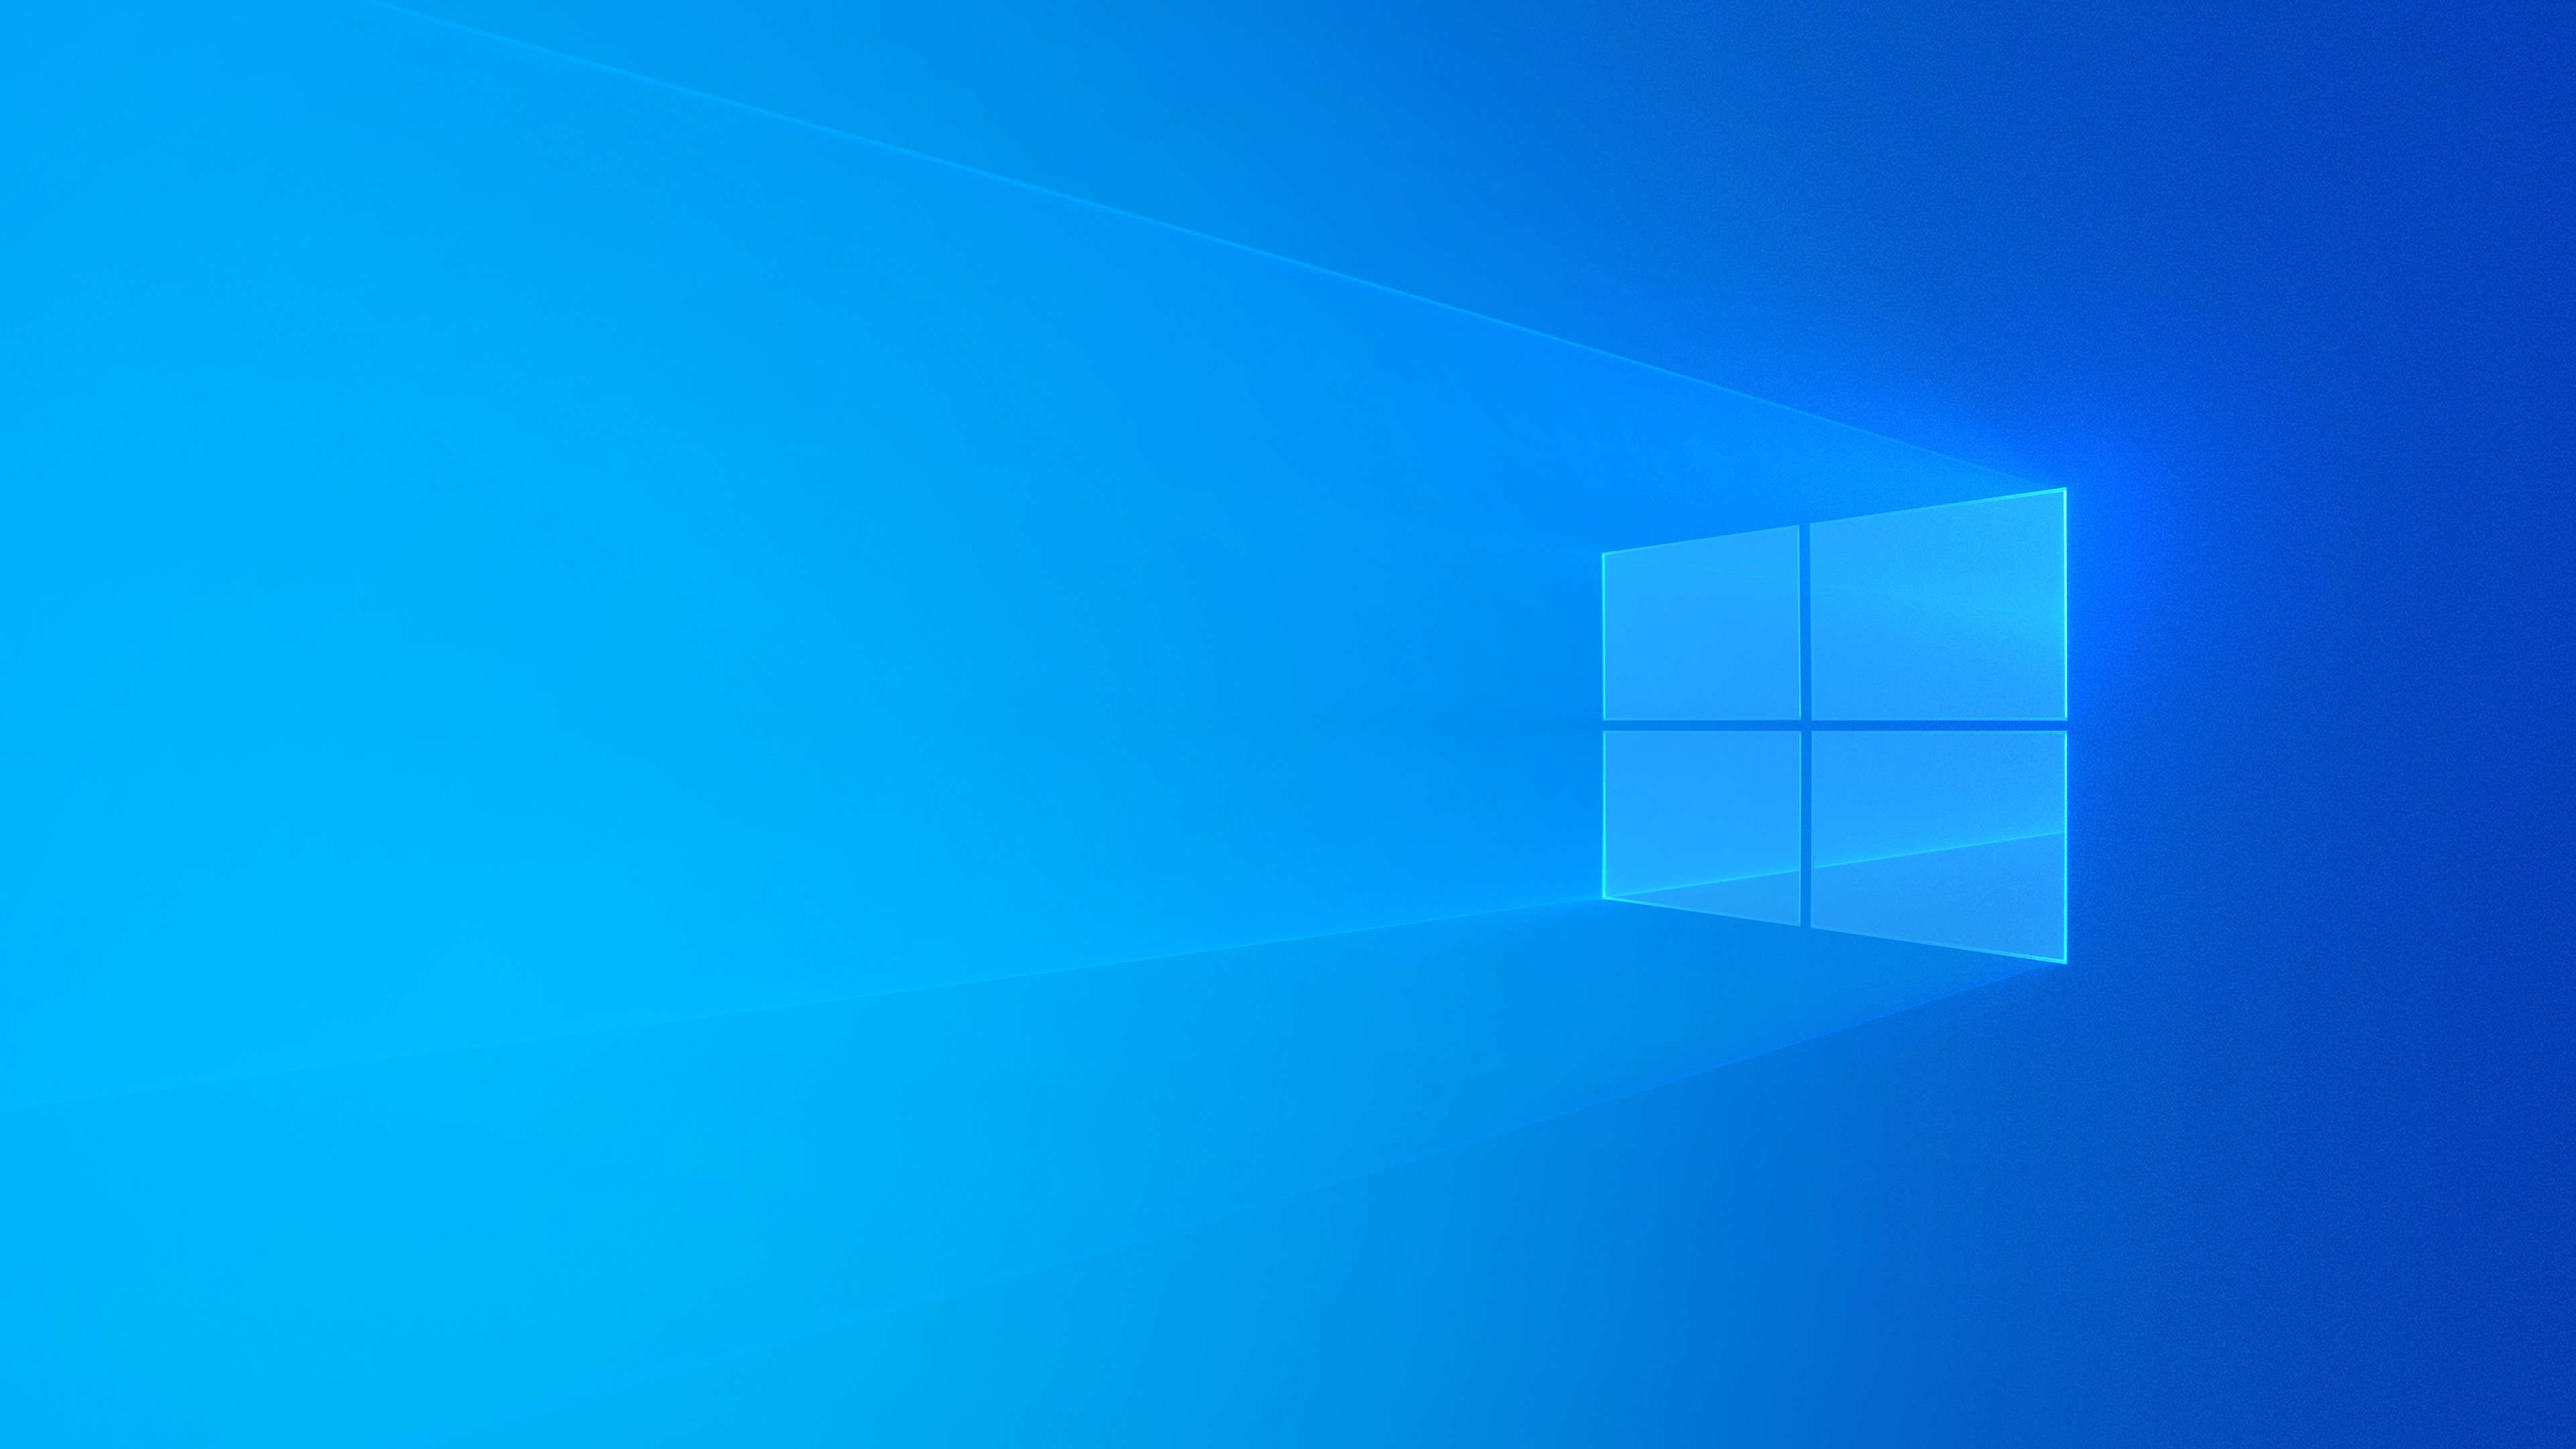 microsoft u0026 39 s windows 10 development process changes